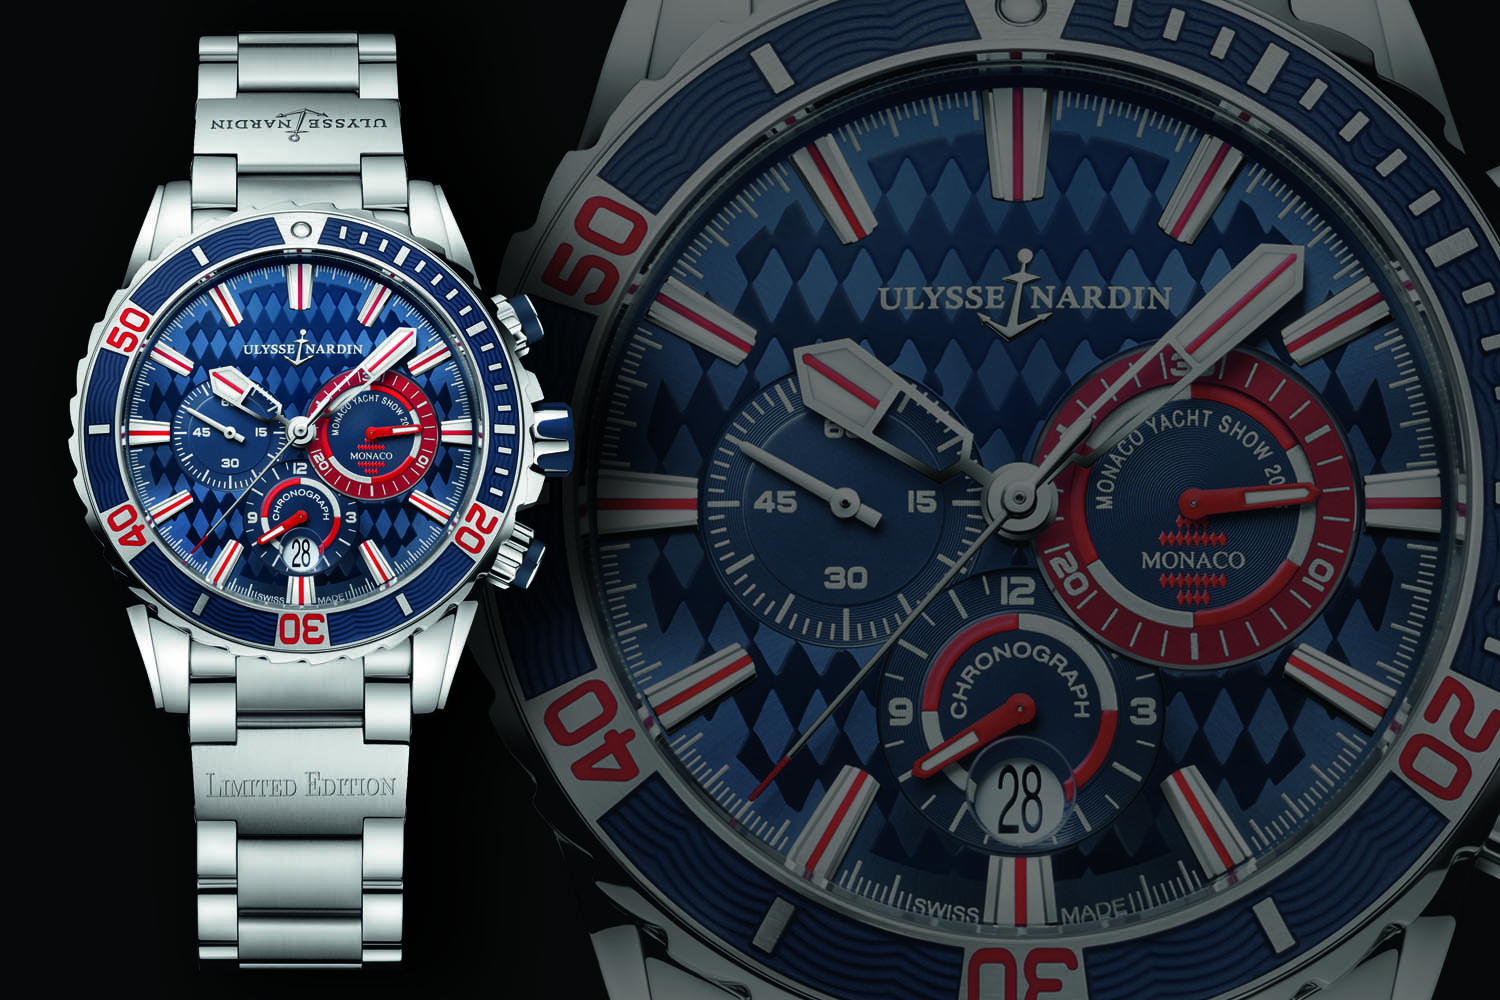 Ulysse Nardin Diver Chronograph Monaco Limited Edition